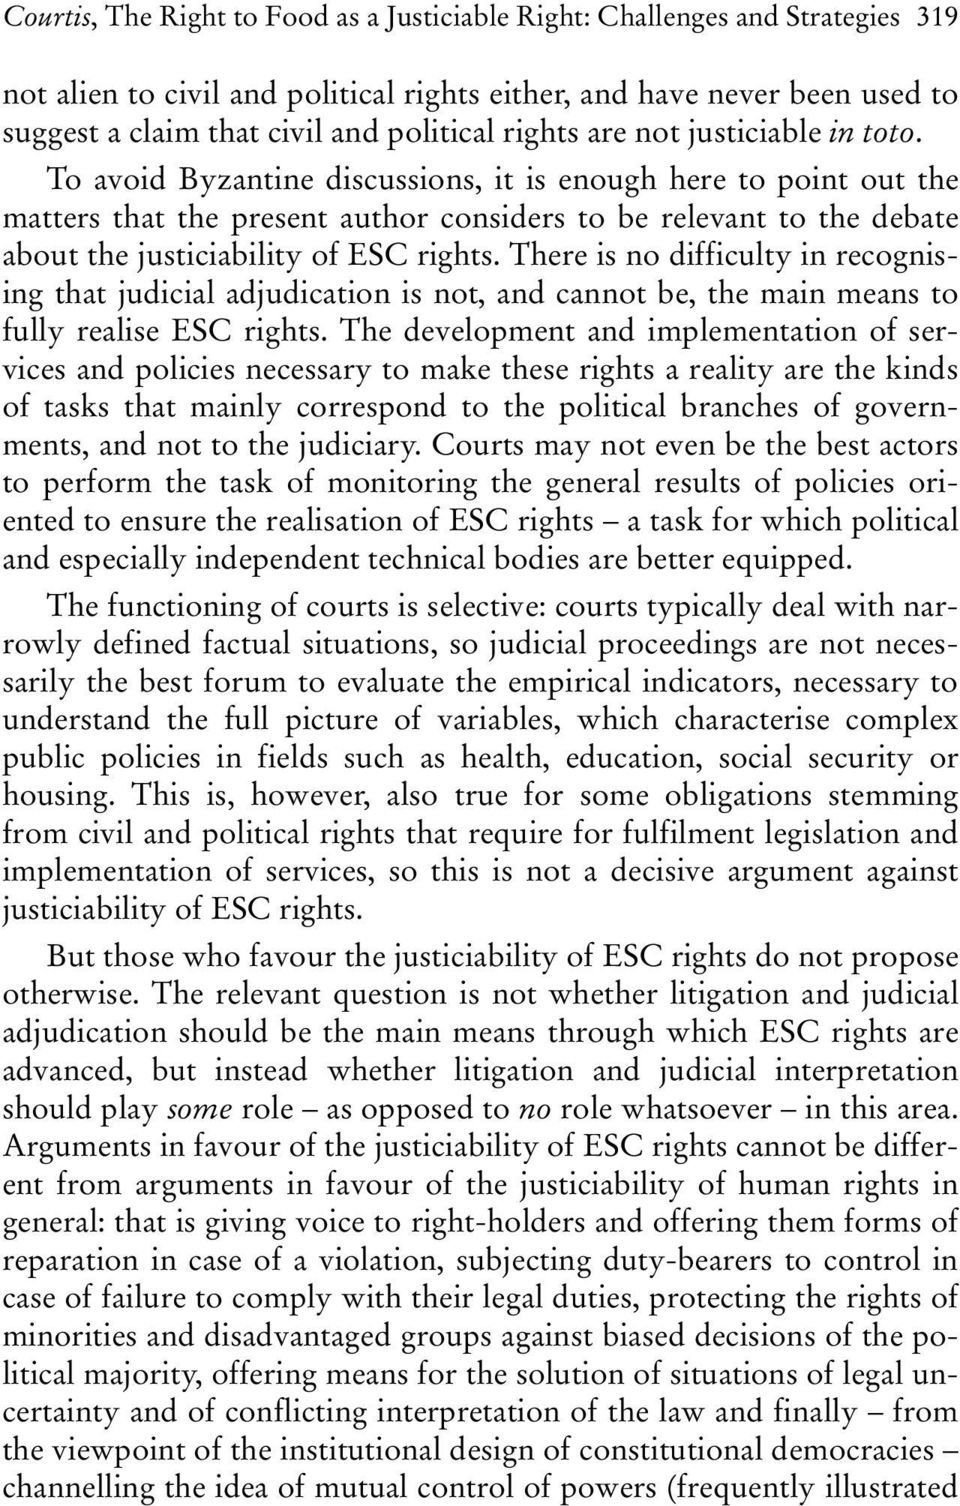 To avoid Byzantine discussions, it is enough here to point out the matters that the present author considers to be relevant to the debate about the justiciability of ESC rights.